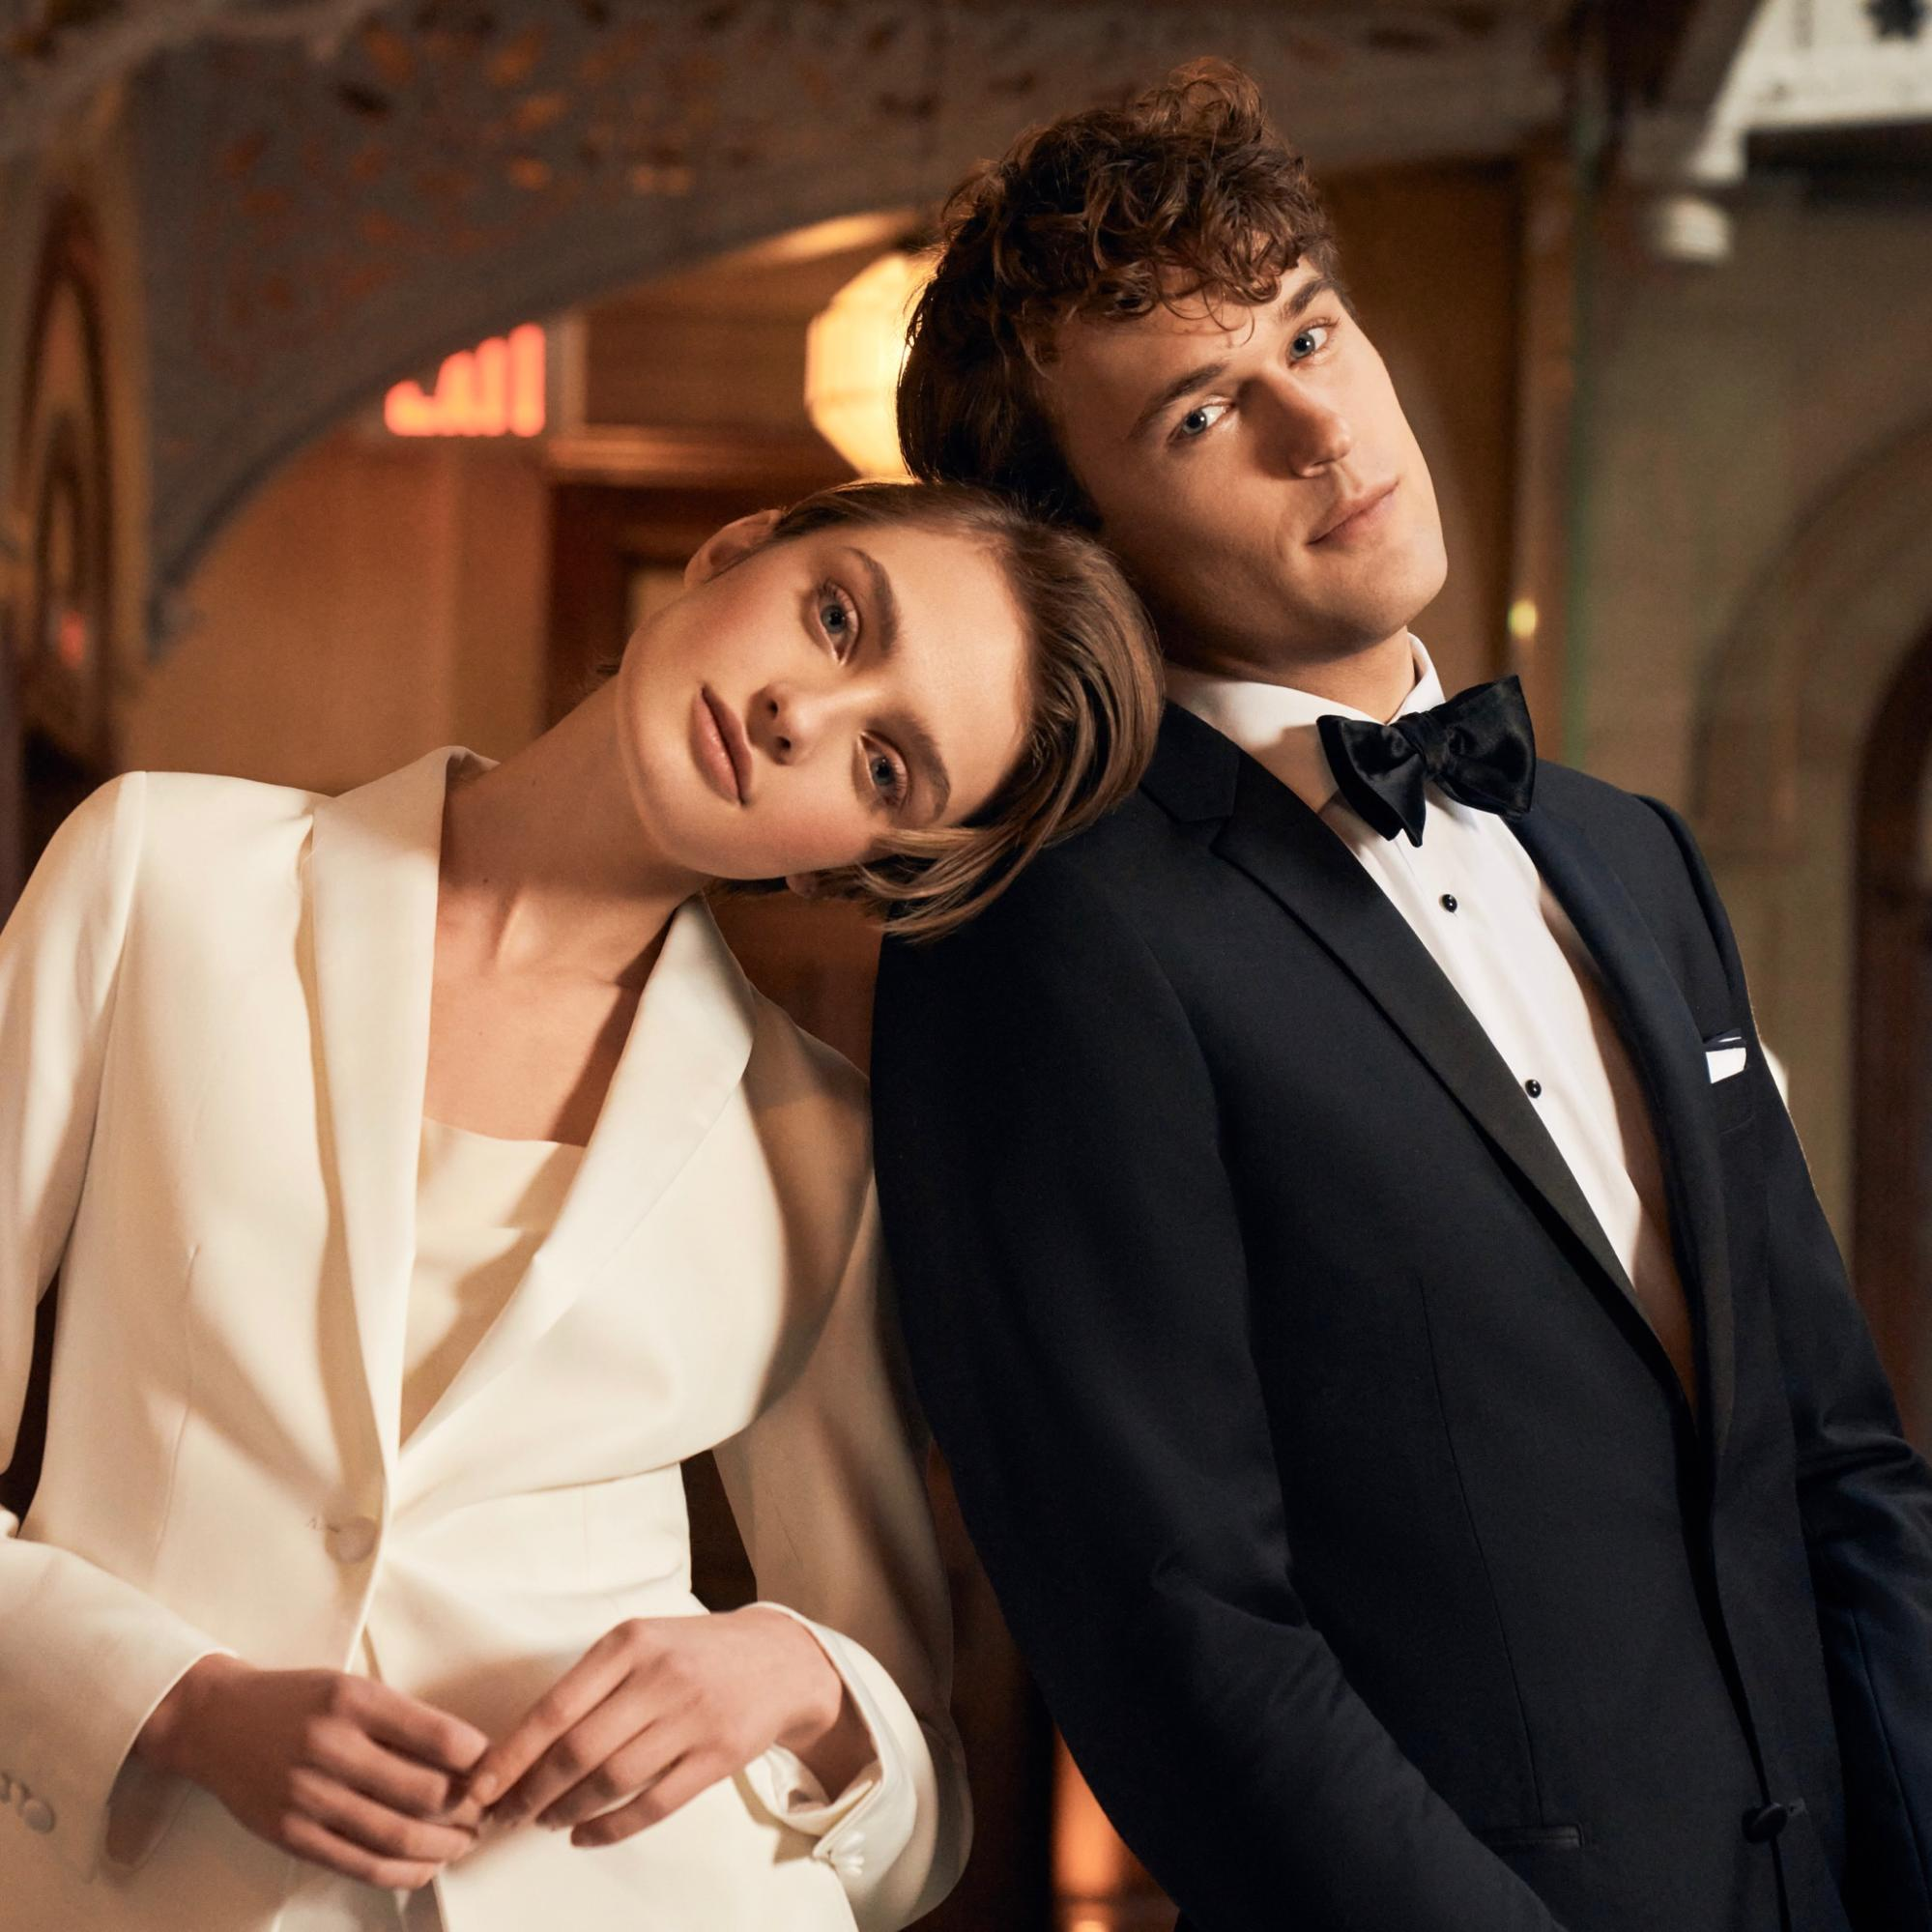 The Groomsman Suit: A female model in a white suit leans against a male model in black suit.